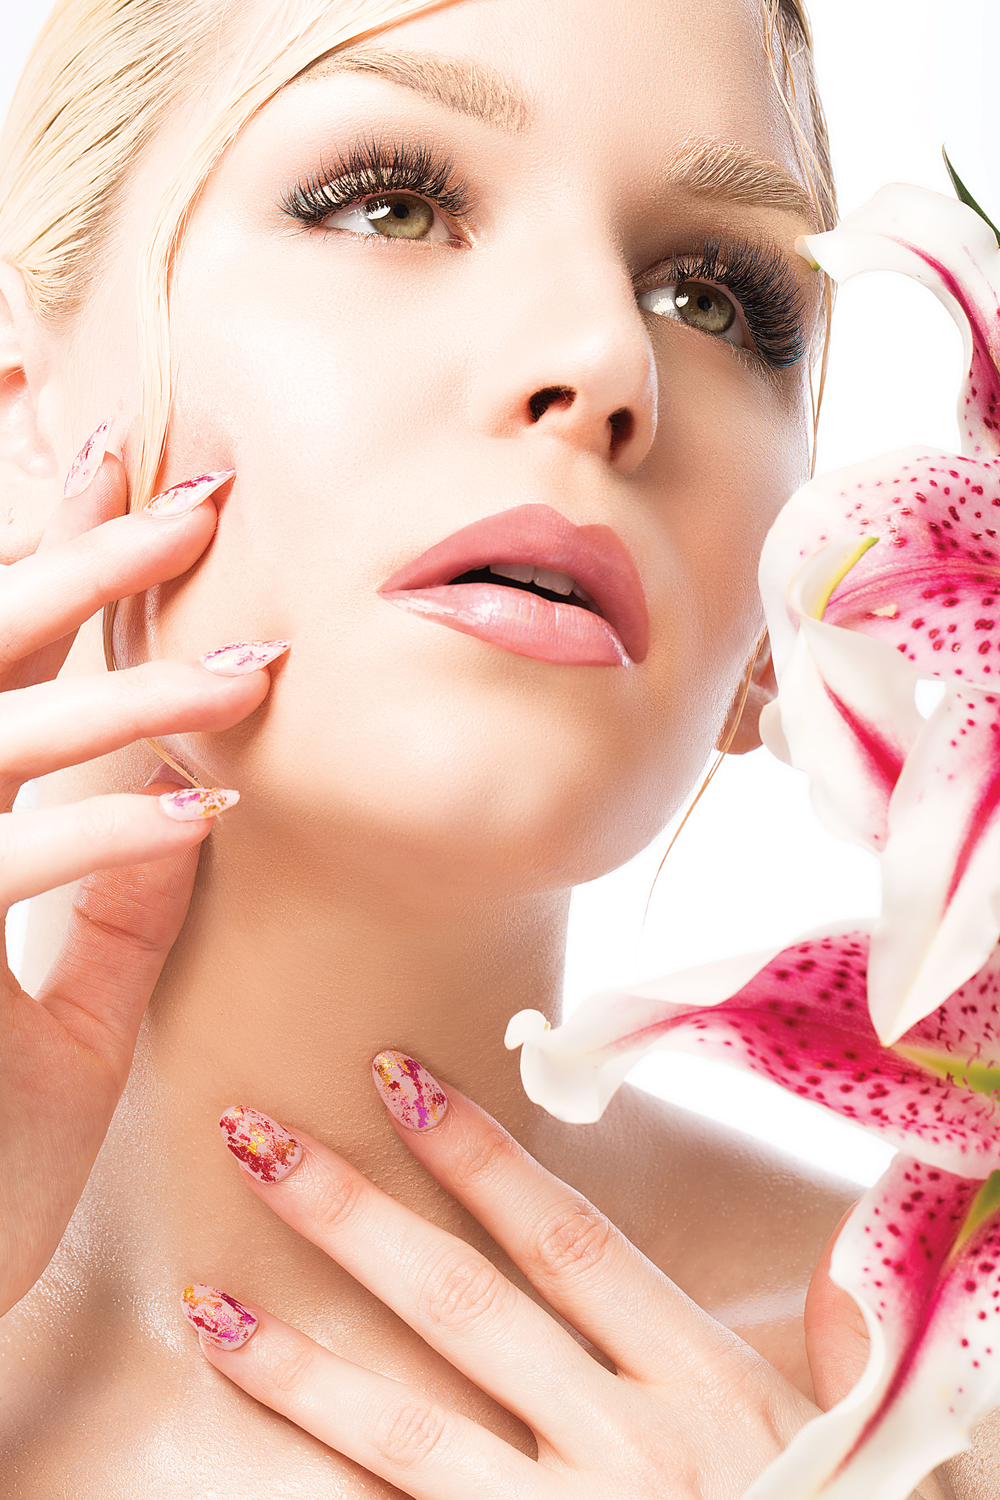 """The collection is called """"Details in Full Bloom,"""" zeroing in on lashes, nails and makeup alongside gorgeous flowers."""